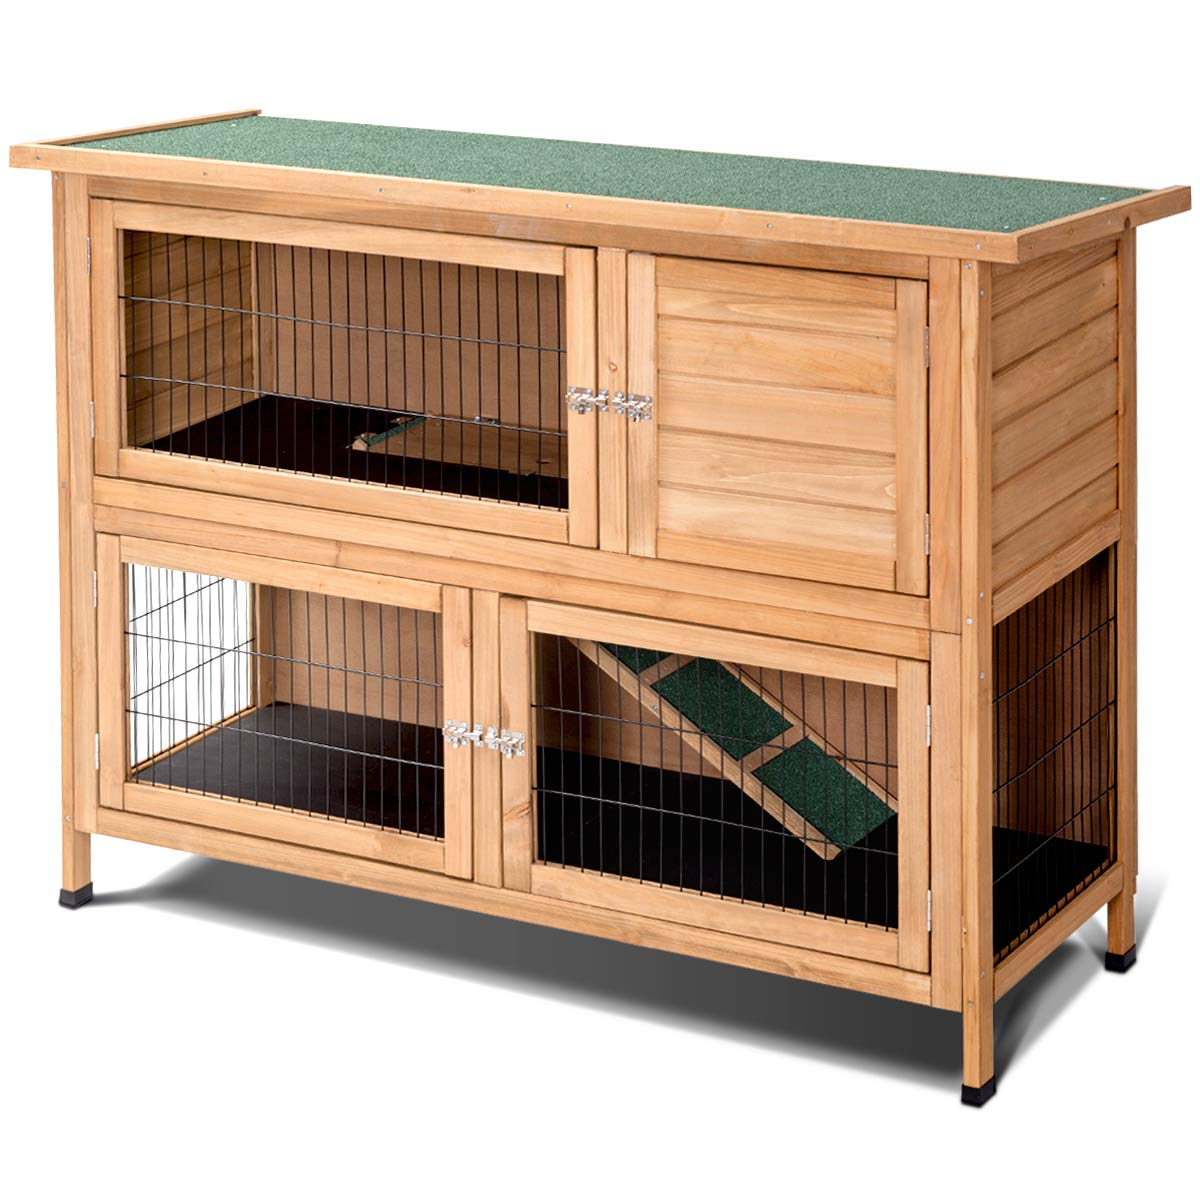 Tangkula 52'' Rabbit Hutch, Outdoor Garden Backyard Poultry House, Wooden Hen House/Wood Chicken Coop, Bunny Rabbit Hutch (Double-Layered) by Tangkula